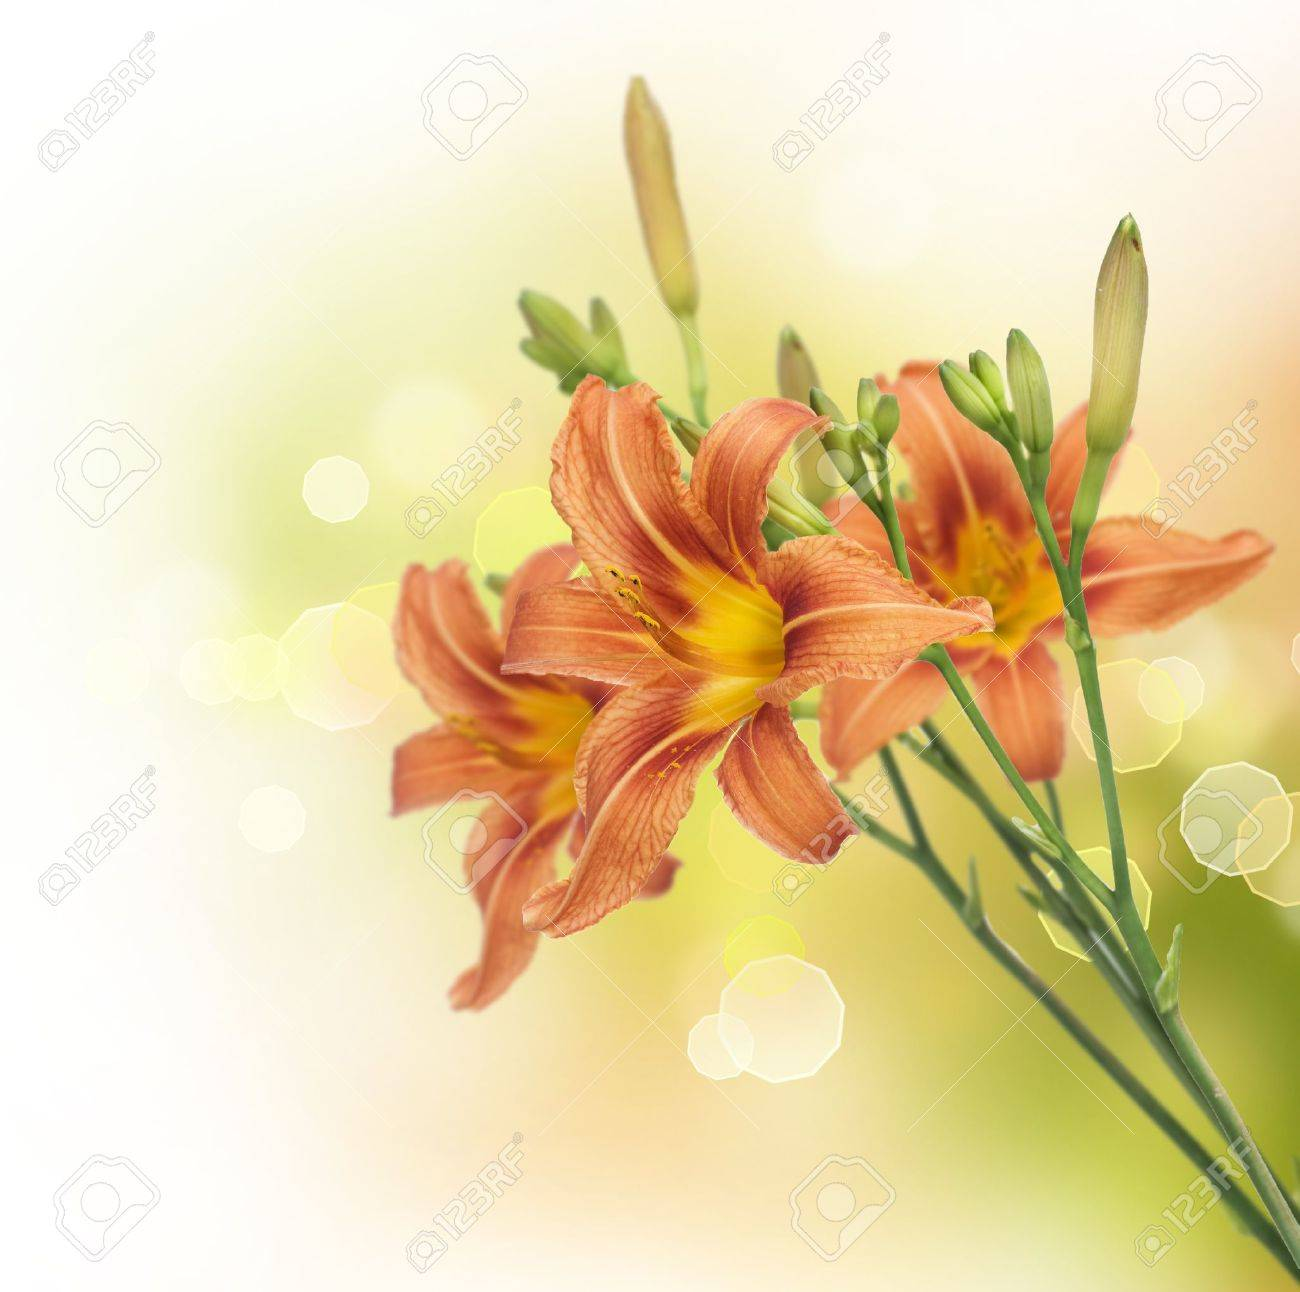 Yellow lily flower border design stock photo picture and royalty yellow lily flower border design stock photo 9829250 dhlflorist Images